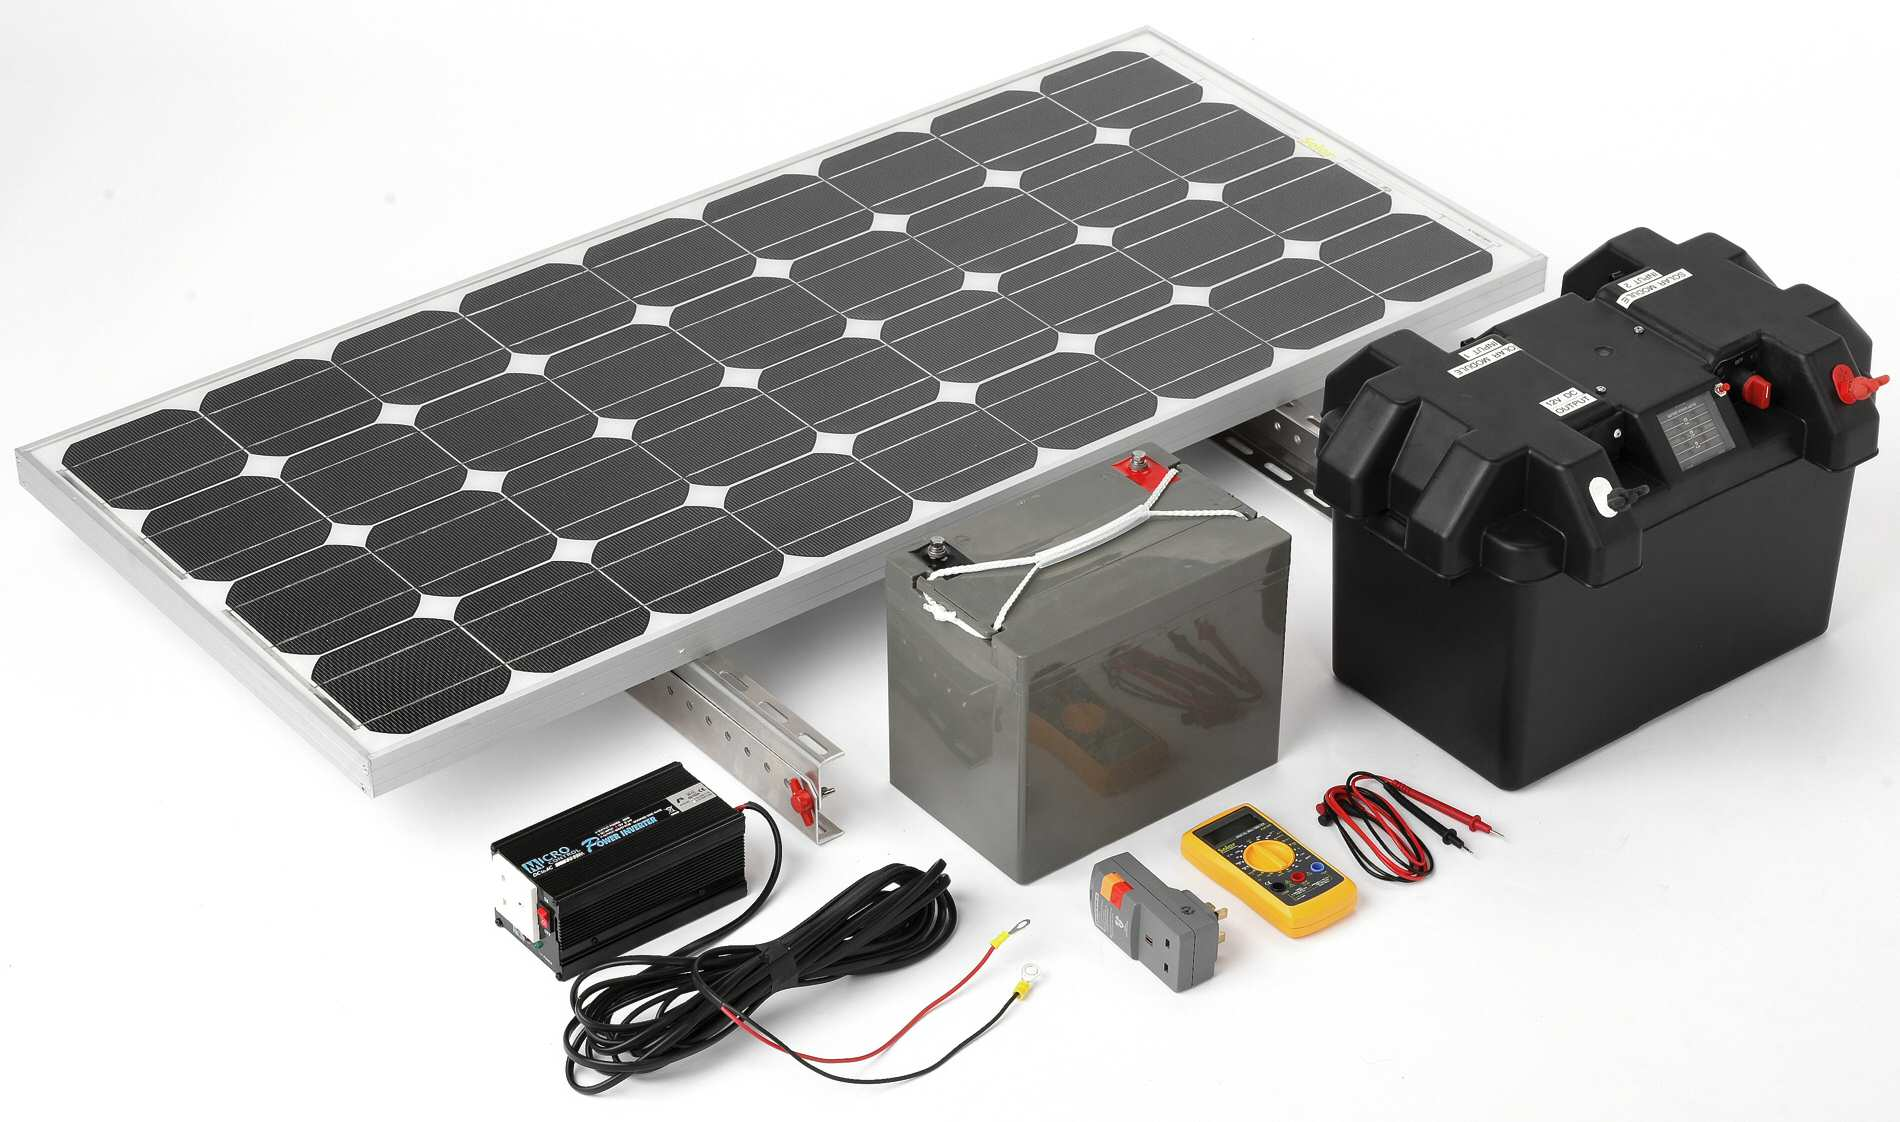 how to prepare to make solor panels at home